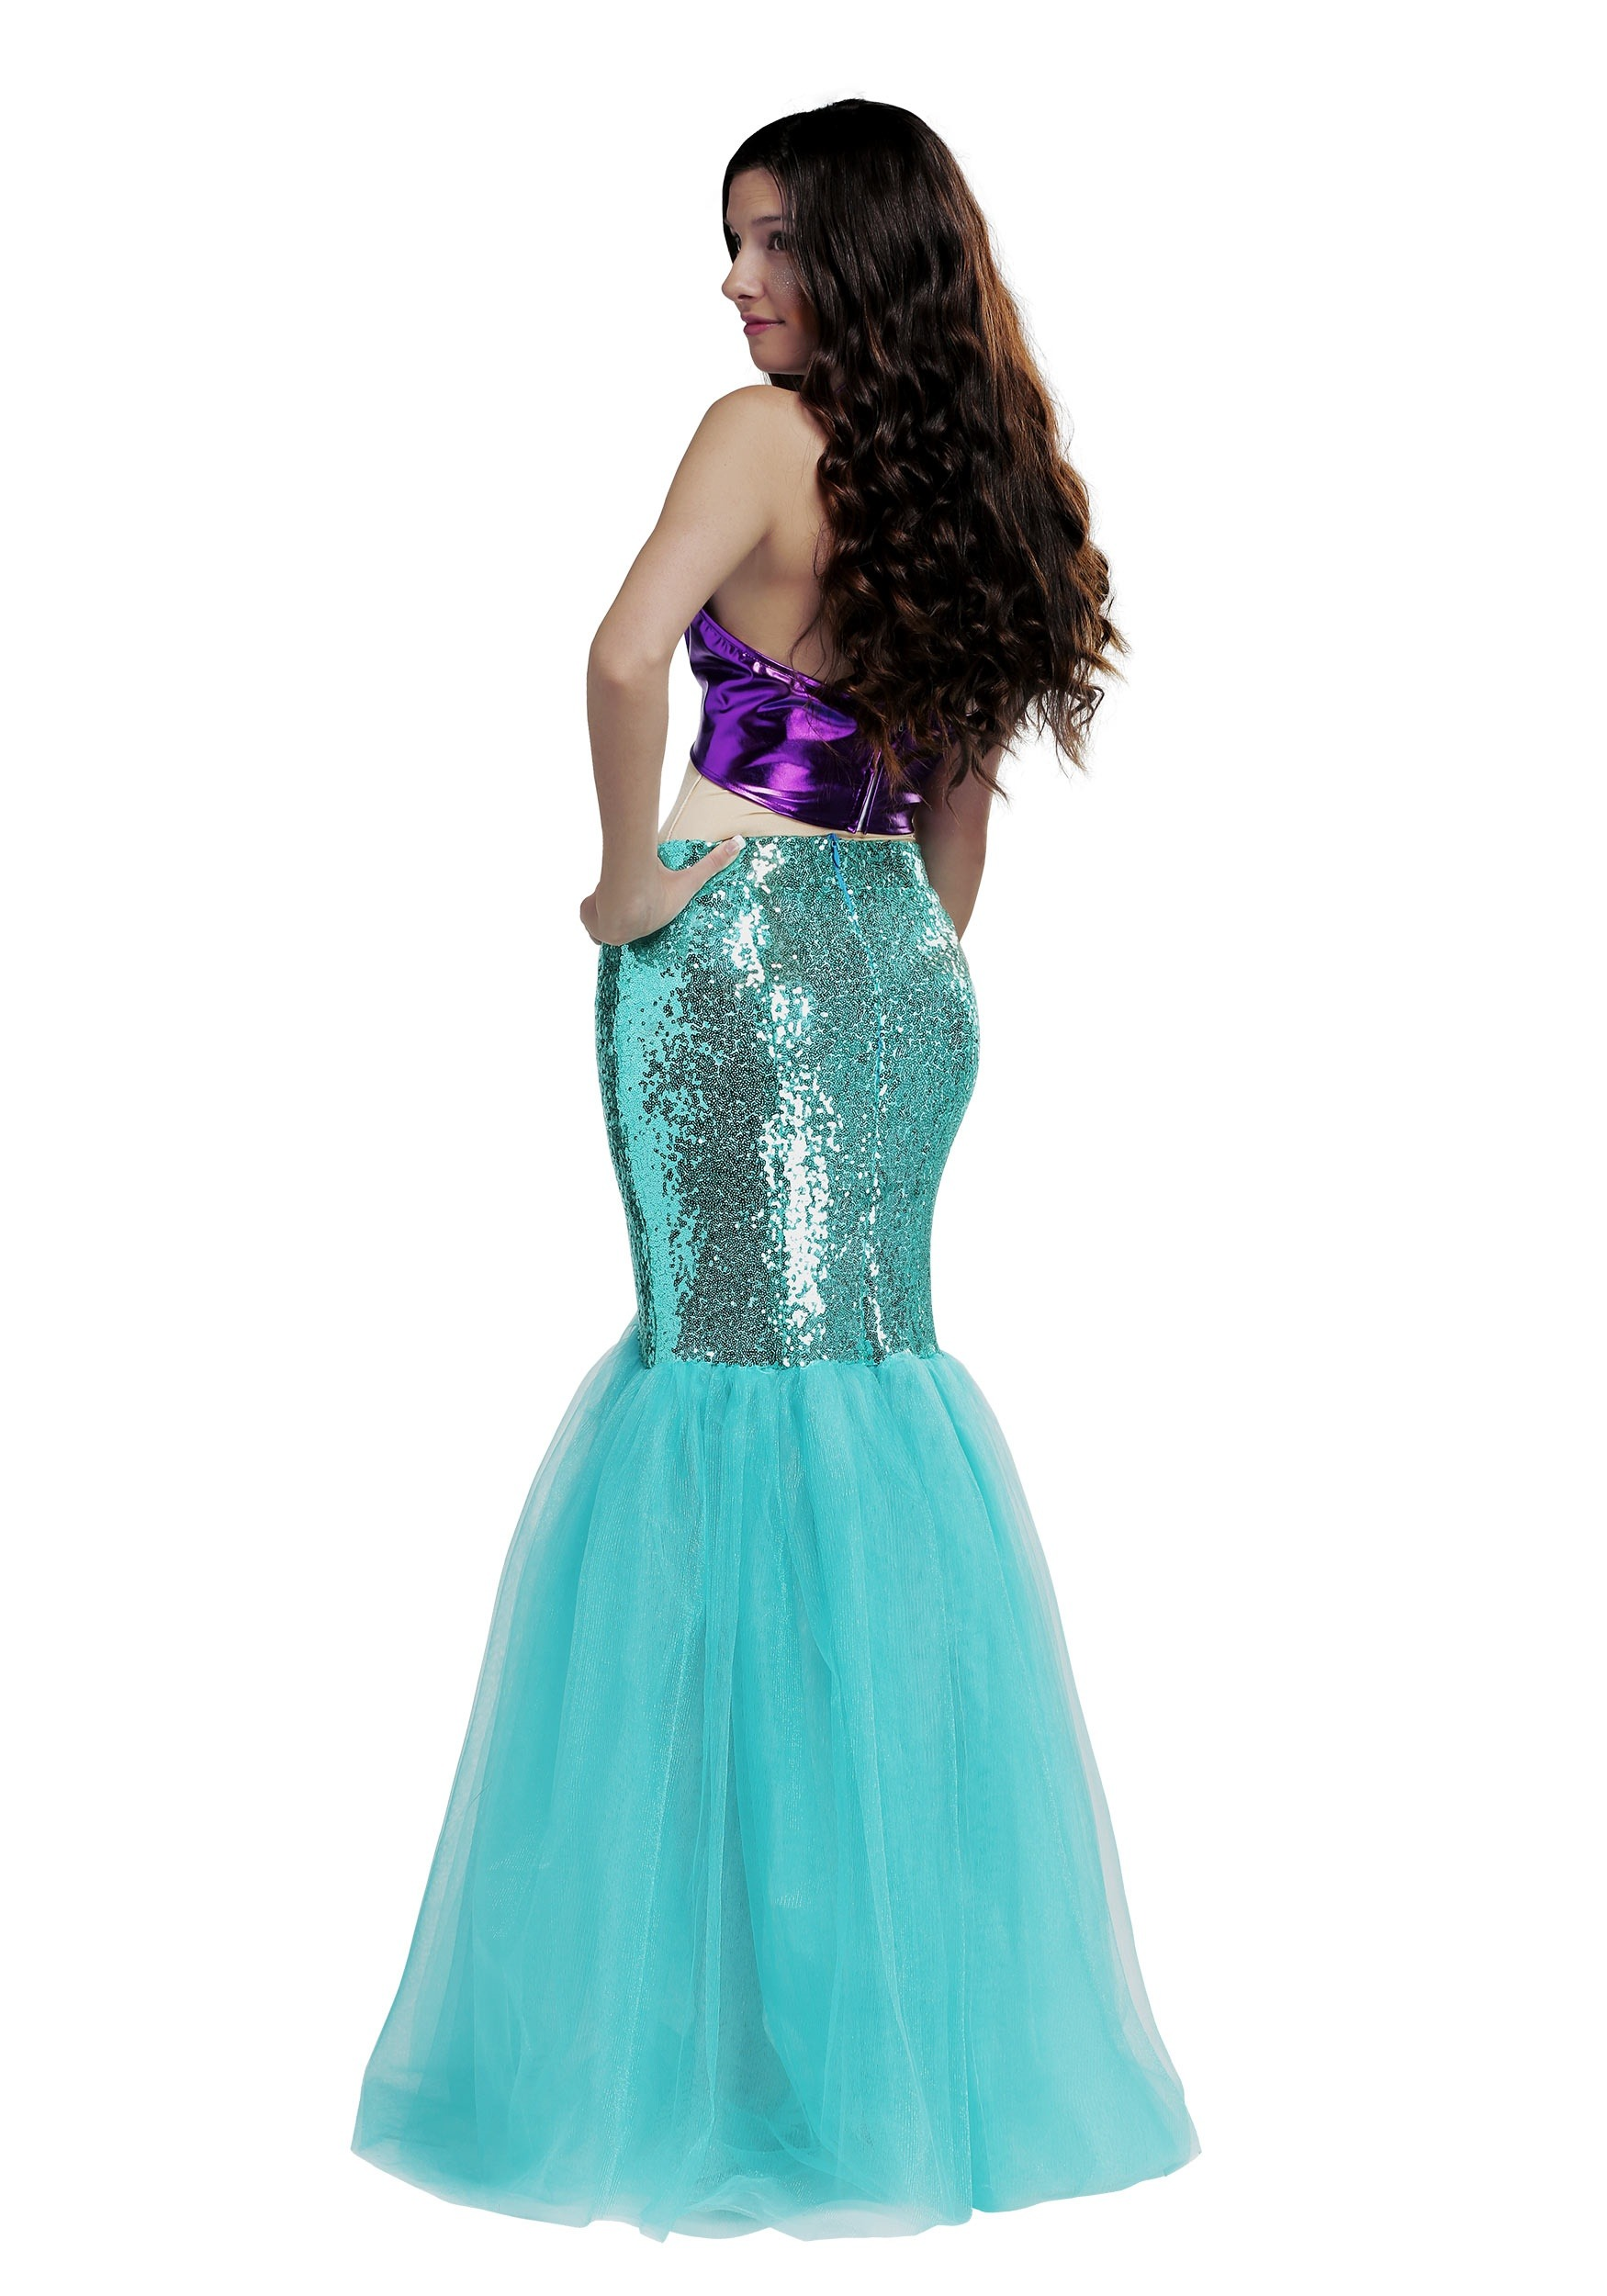 Mermaid clothes for women